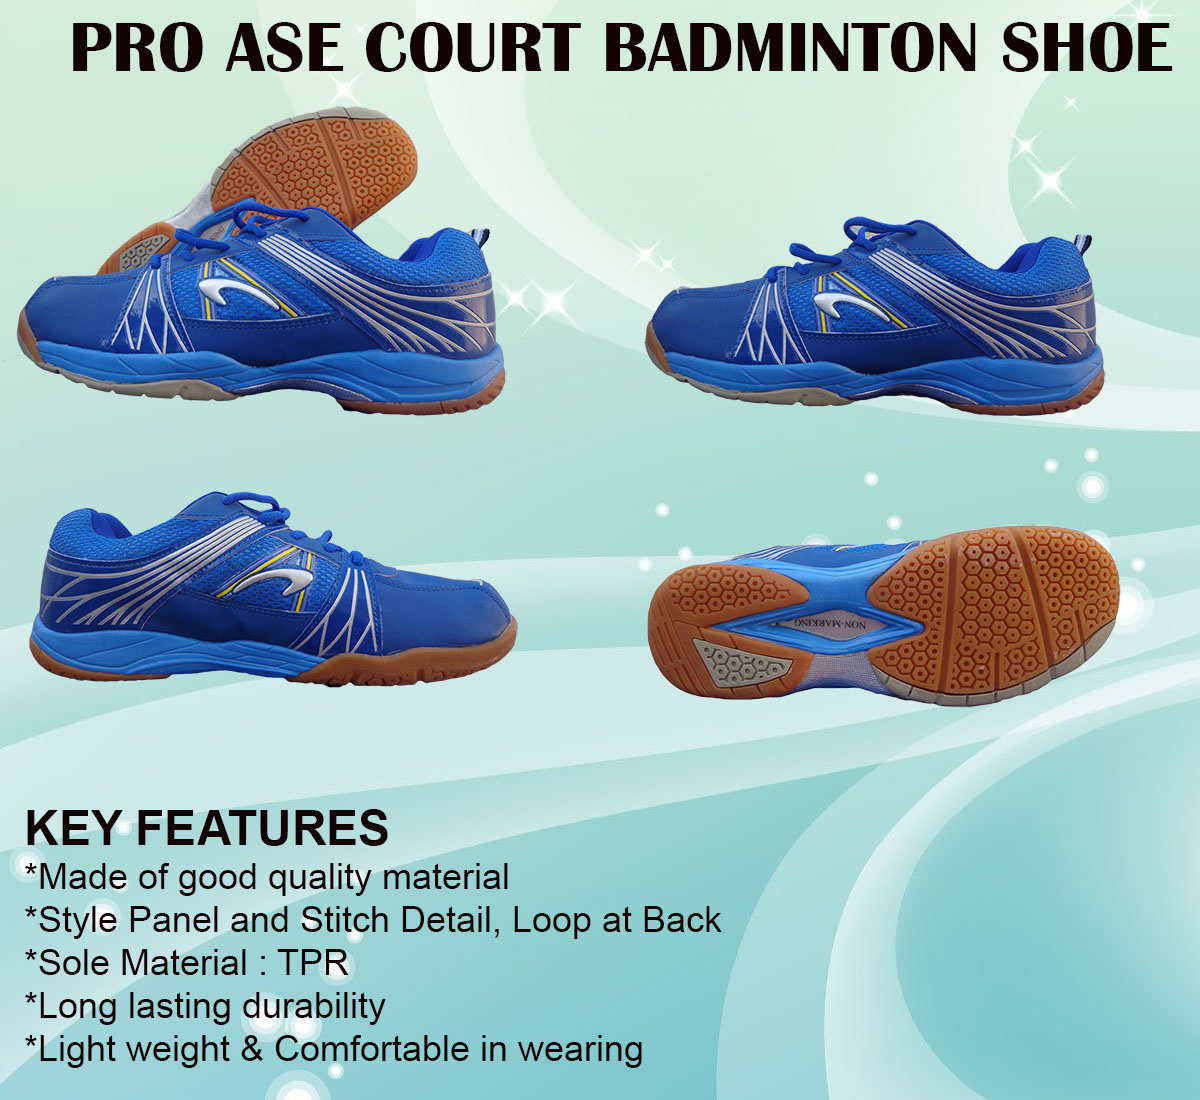 PRO ASE COURT BADMINTON SHOE_blue & gray